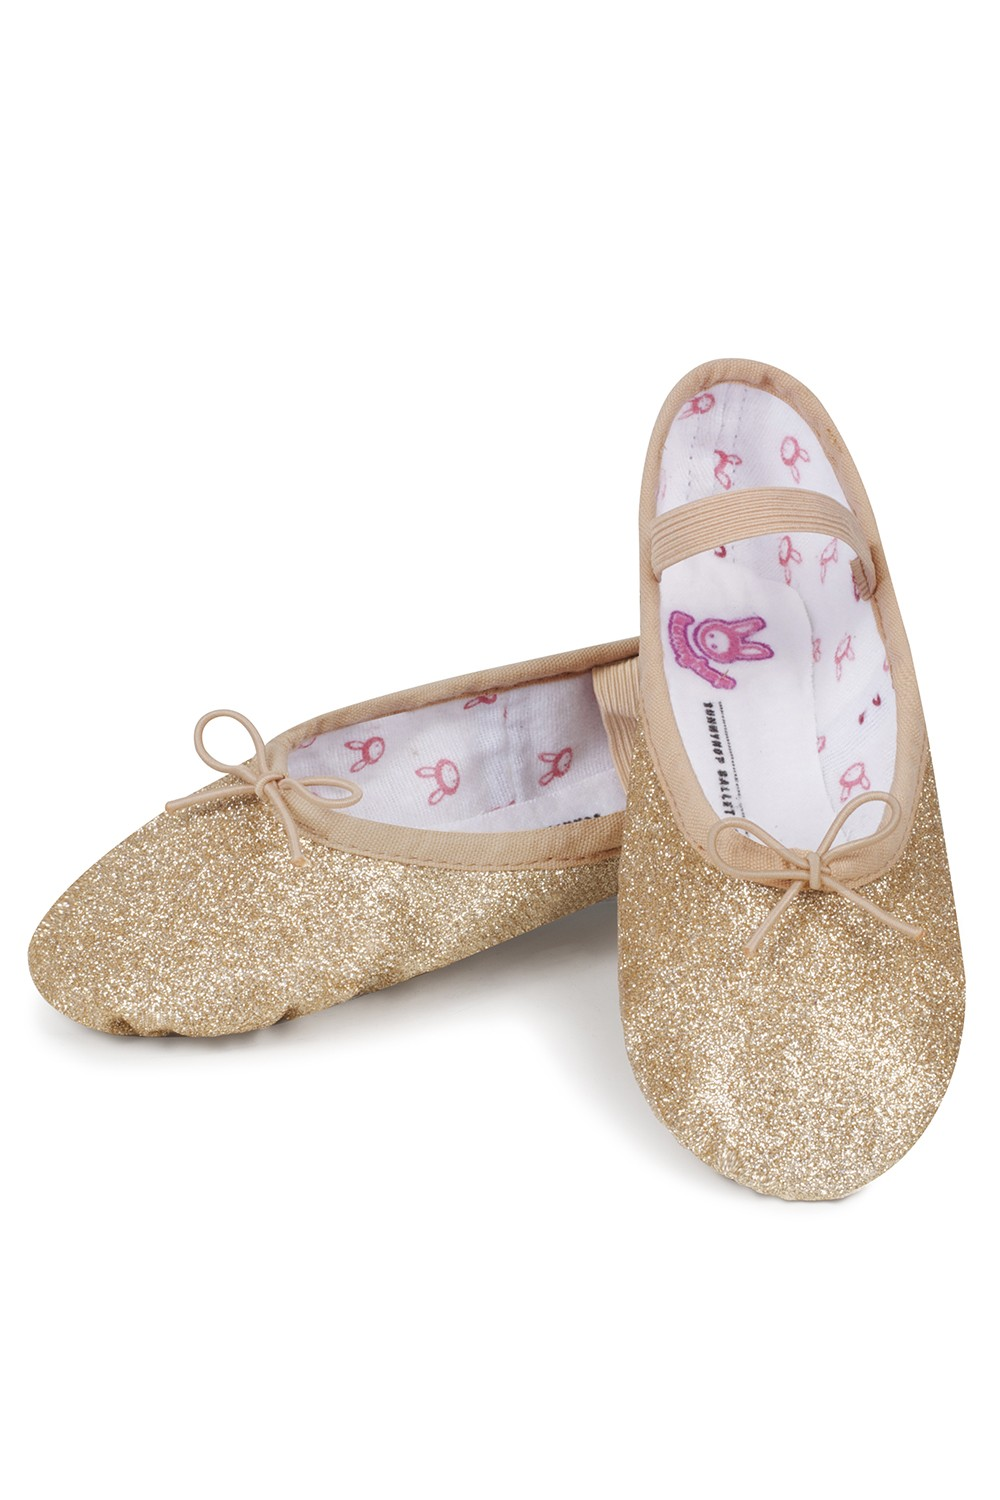 Glitterdust Girl's Ballet Shoes